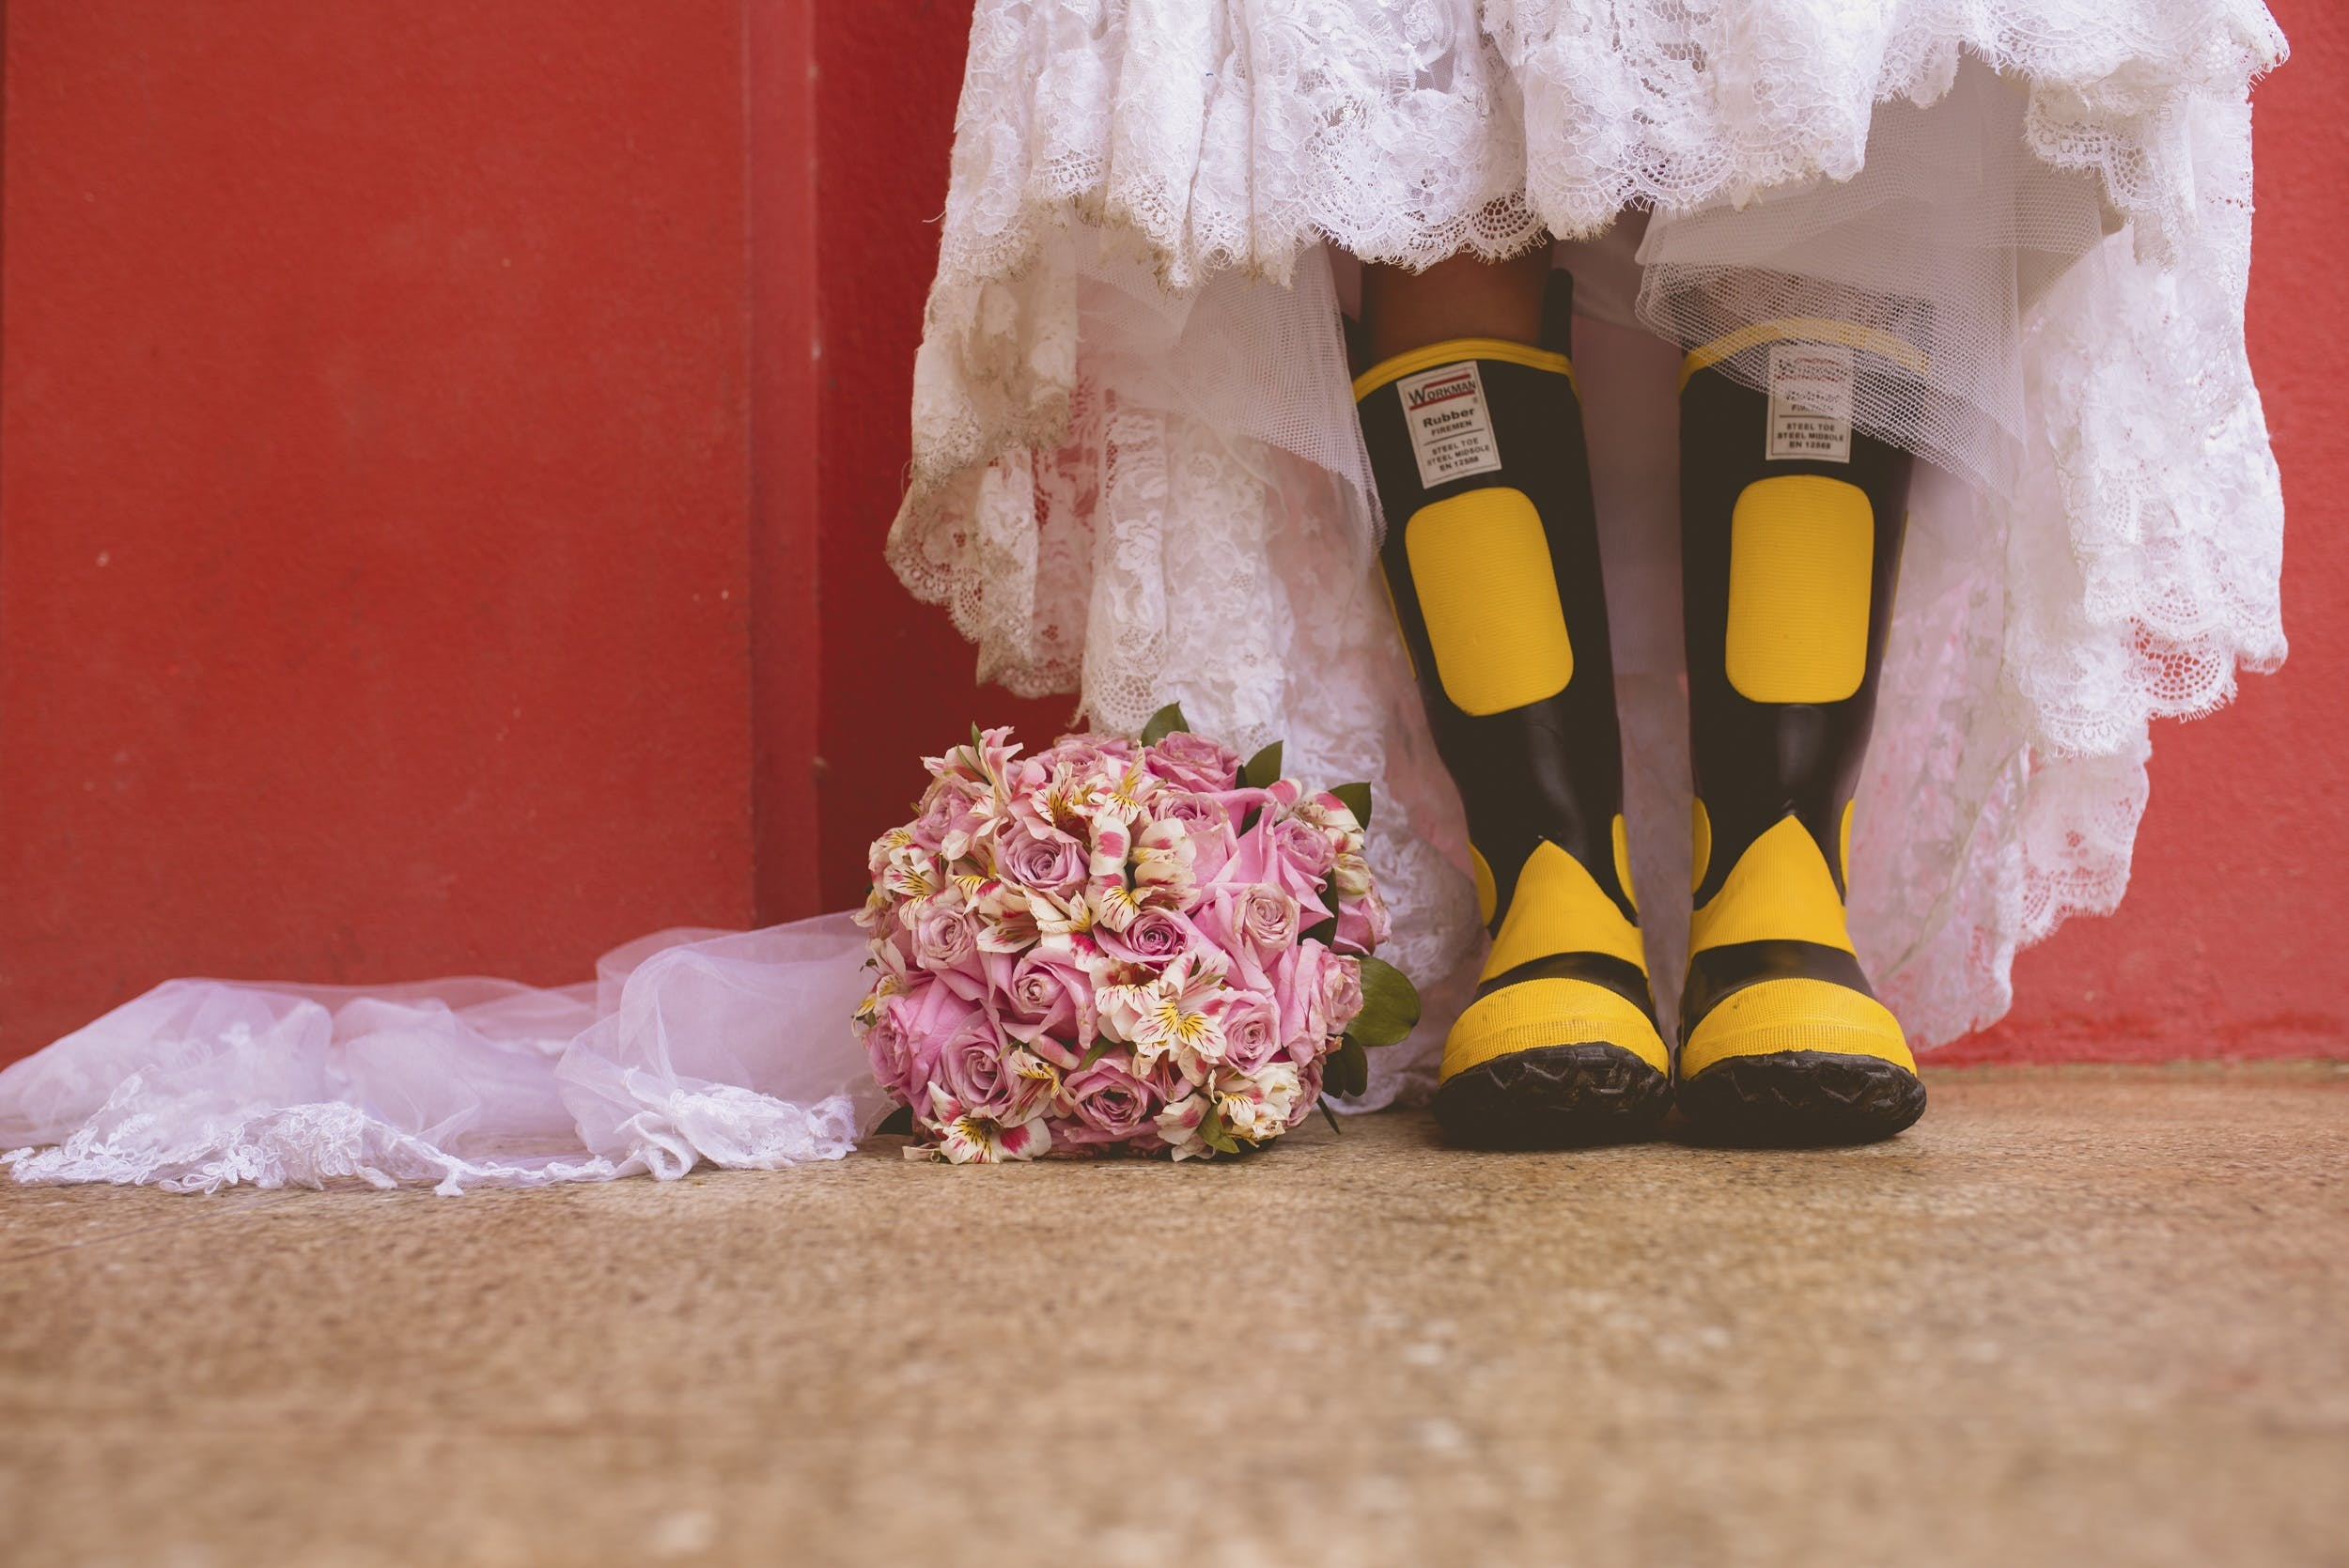 Yellow-and-black Rain Boots